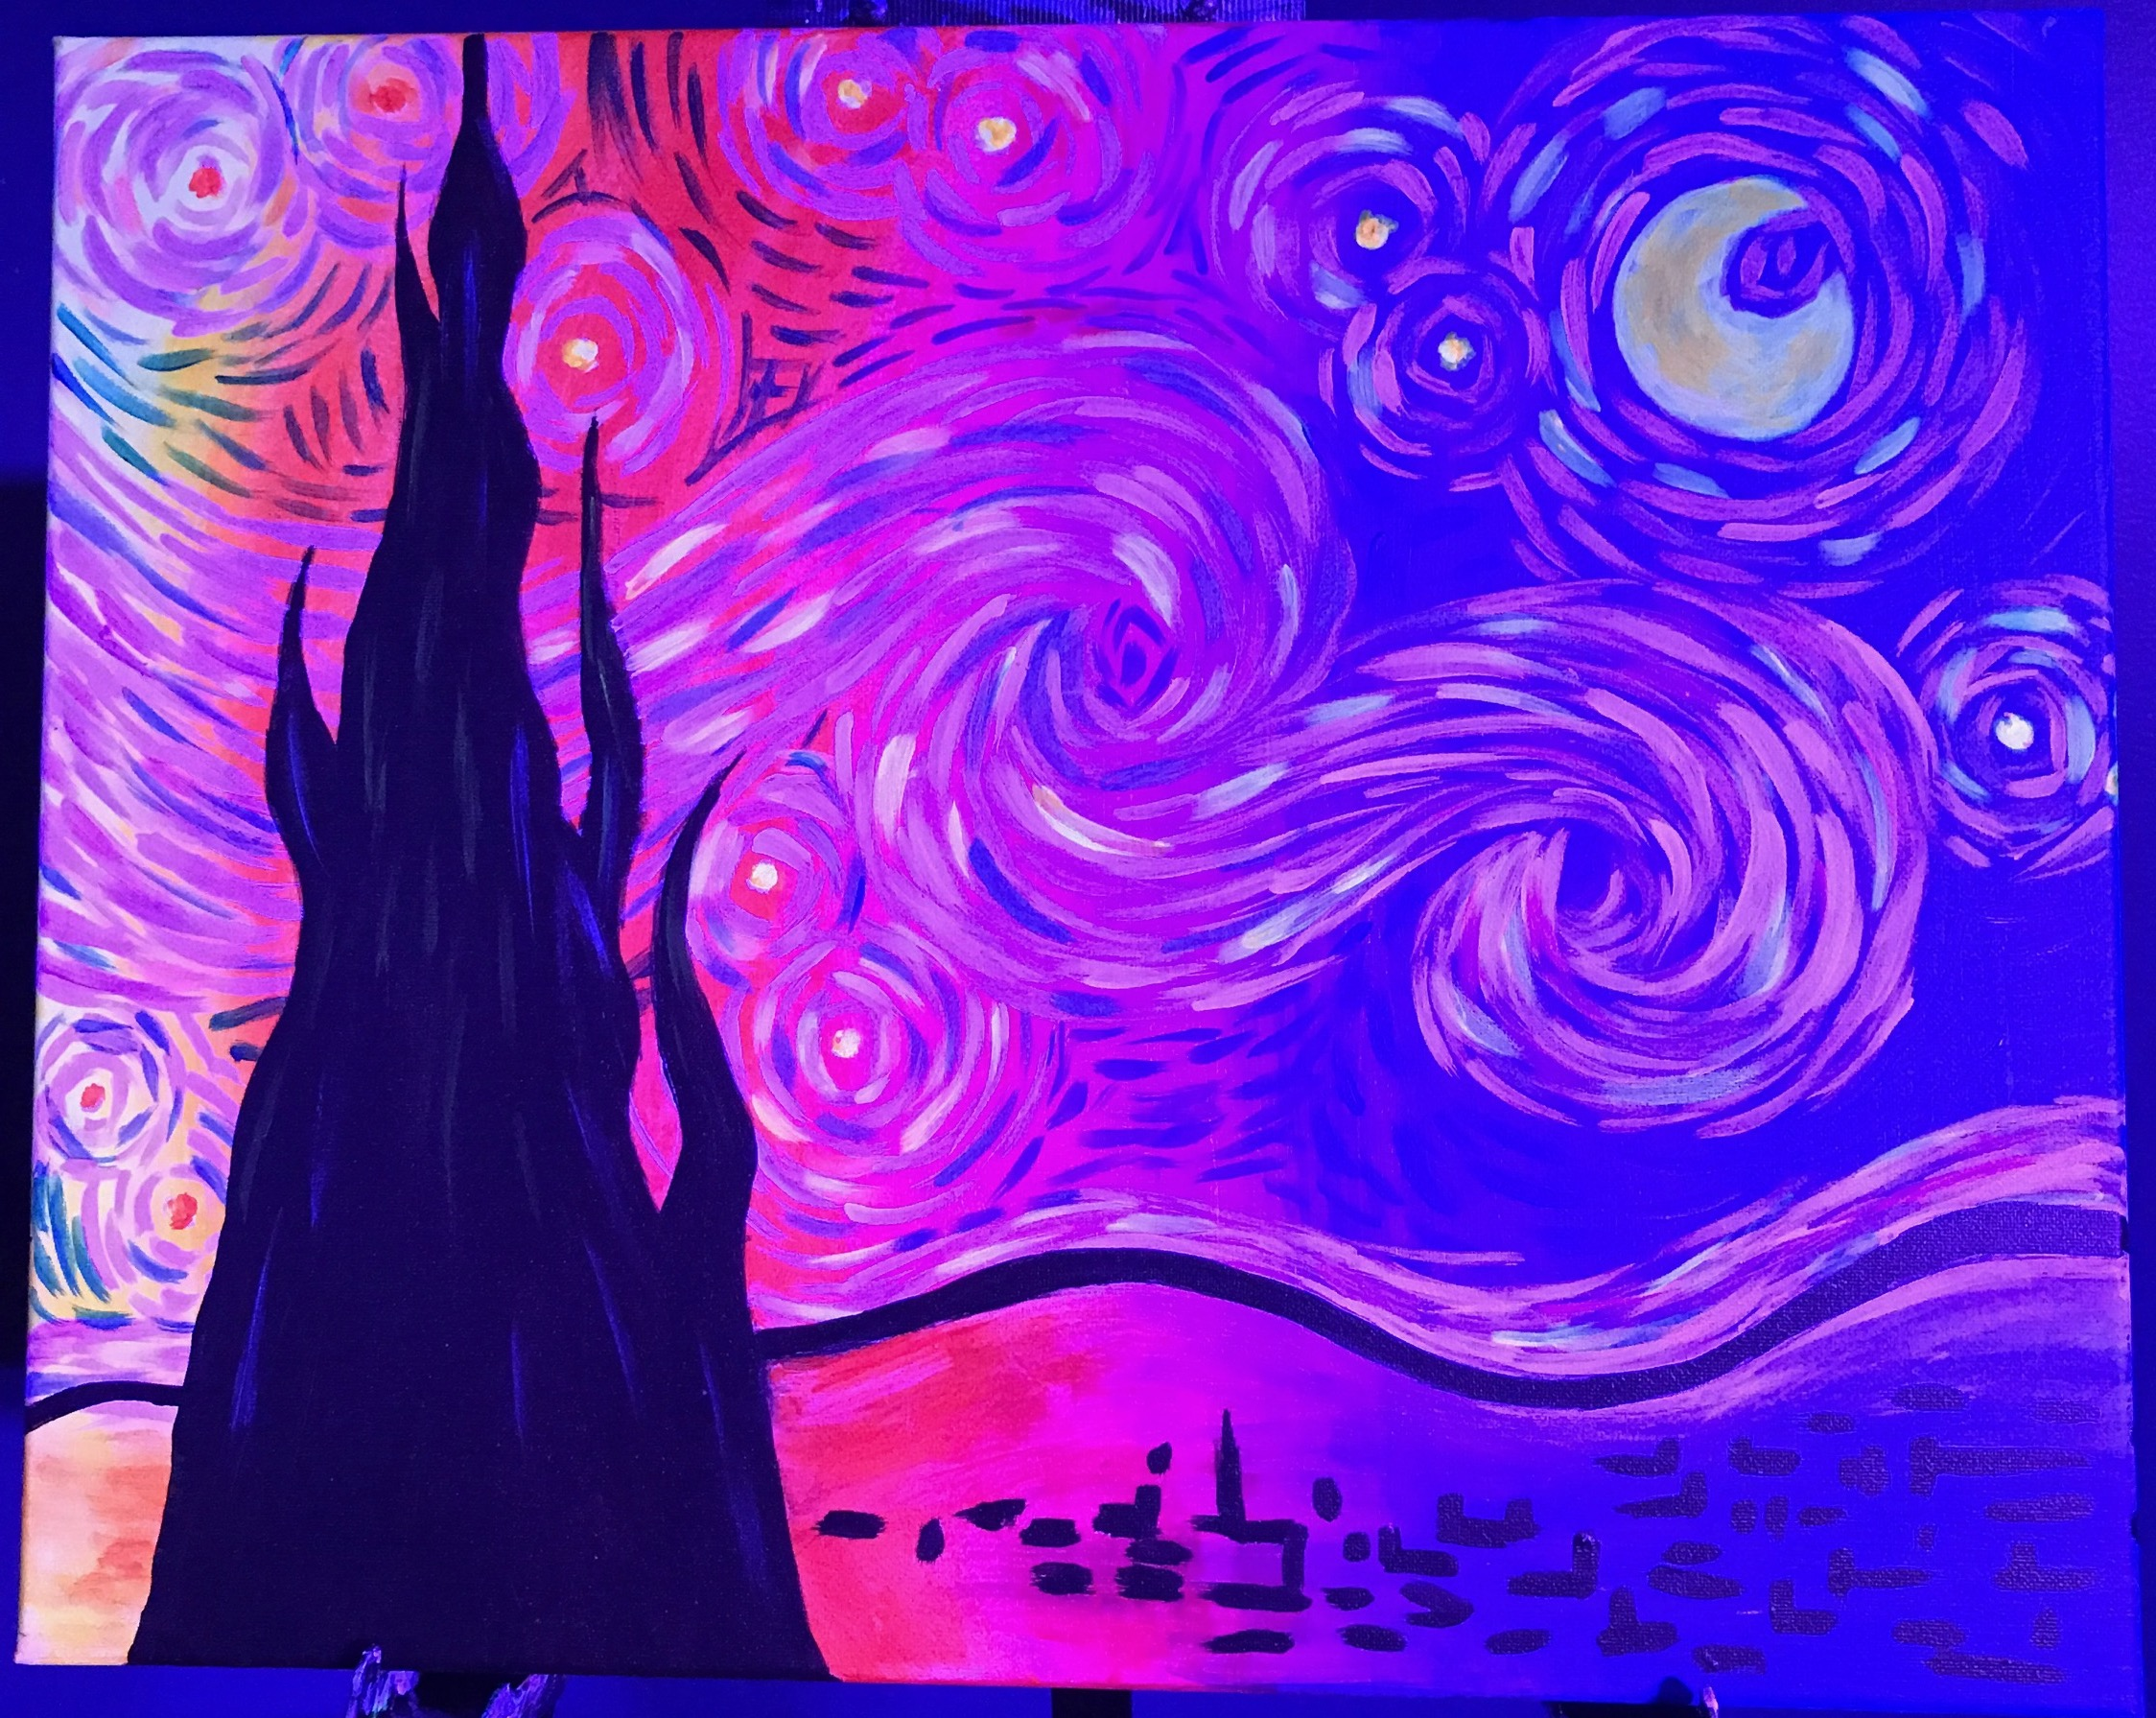 Well Be Painting Psychedelic Starry Night Under Blacklight The Will Burst With Glowing Neon Colors As You Paint It On Canvas But